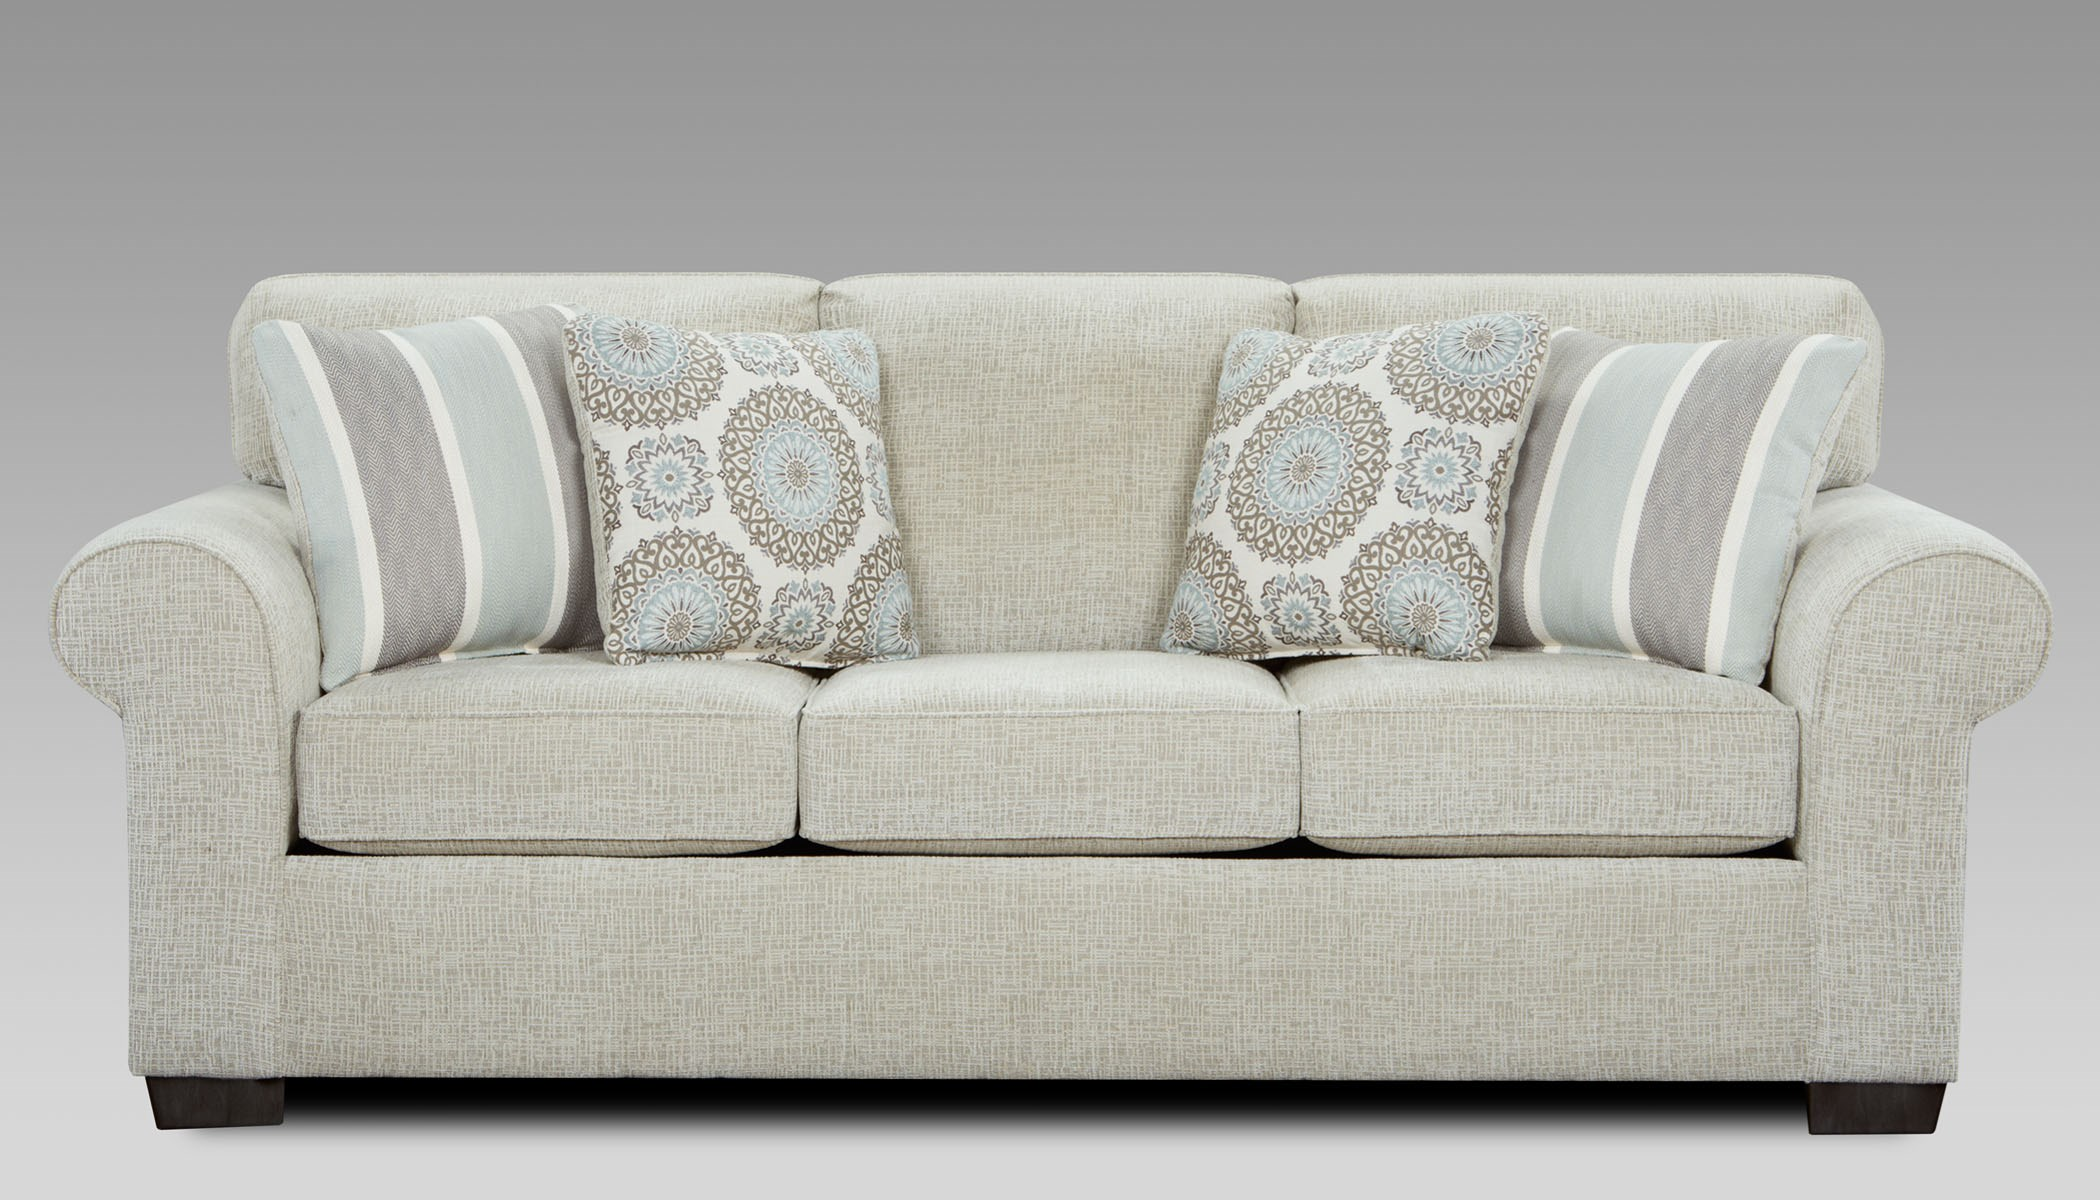 3440 Sofa by Affordable Furniture at Wilcox Furniture